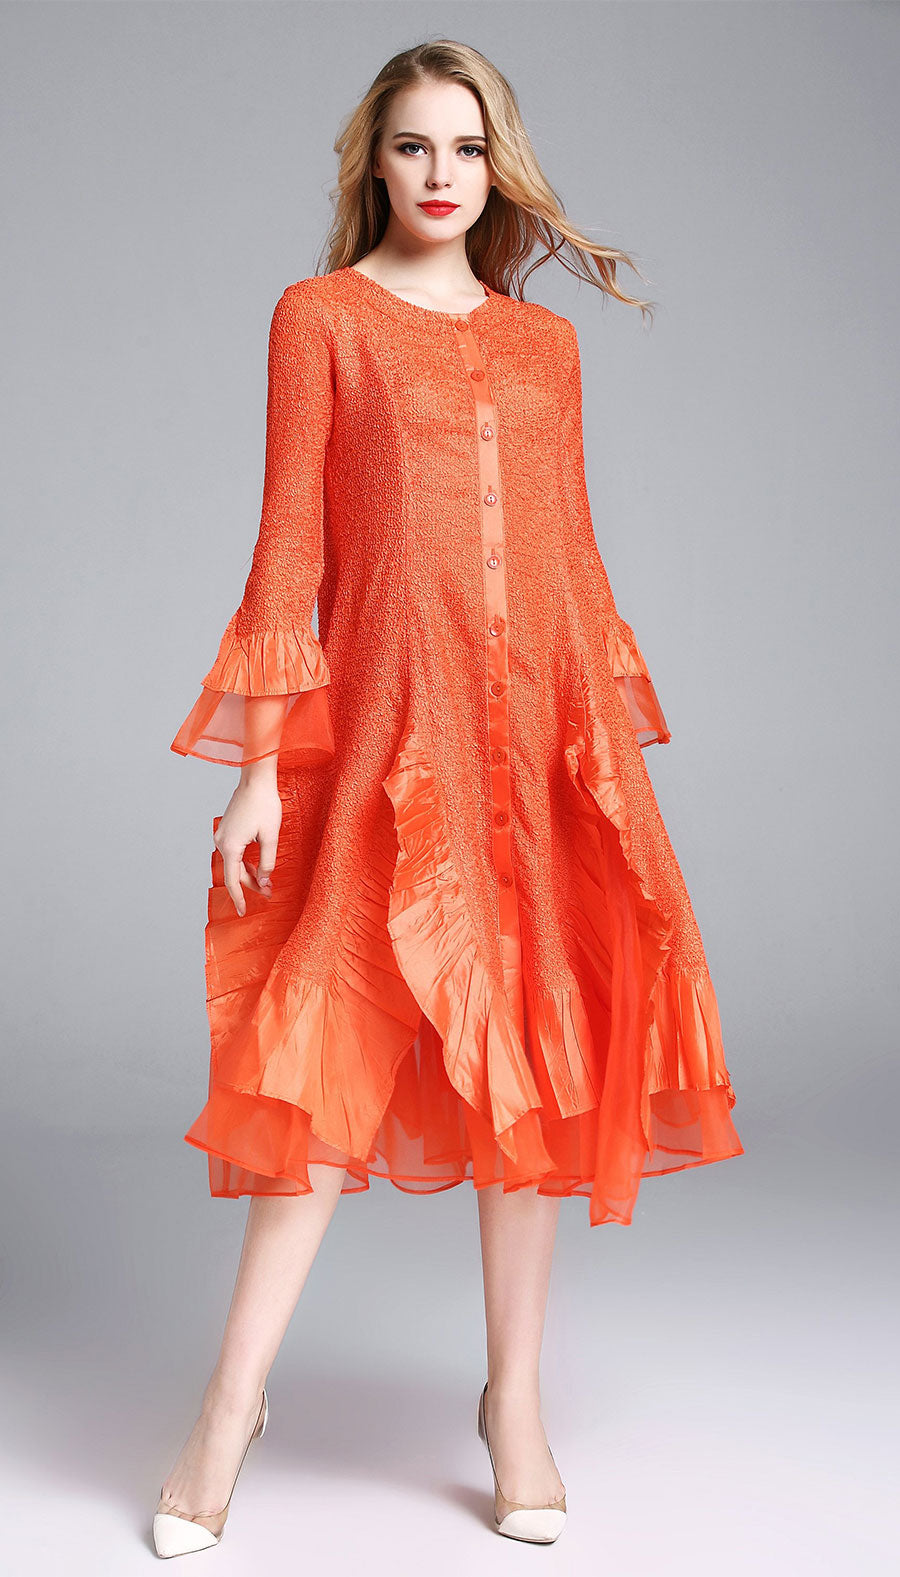 Jerry T Dress SR113-Orange - Church Suits For Less